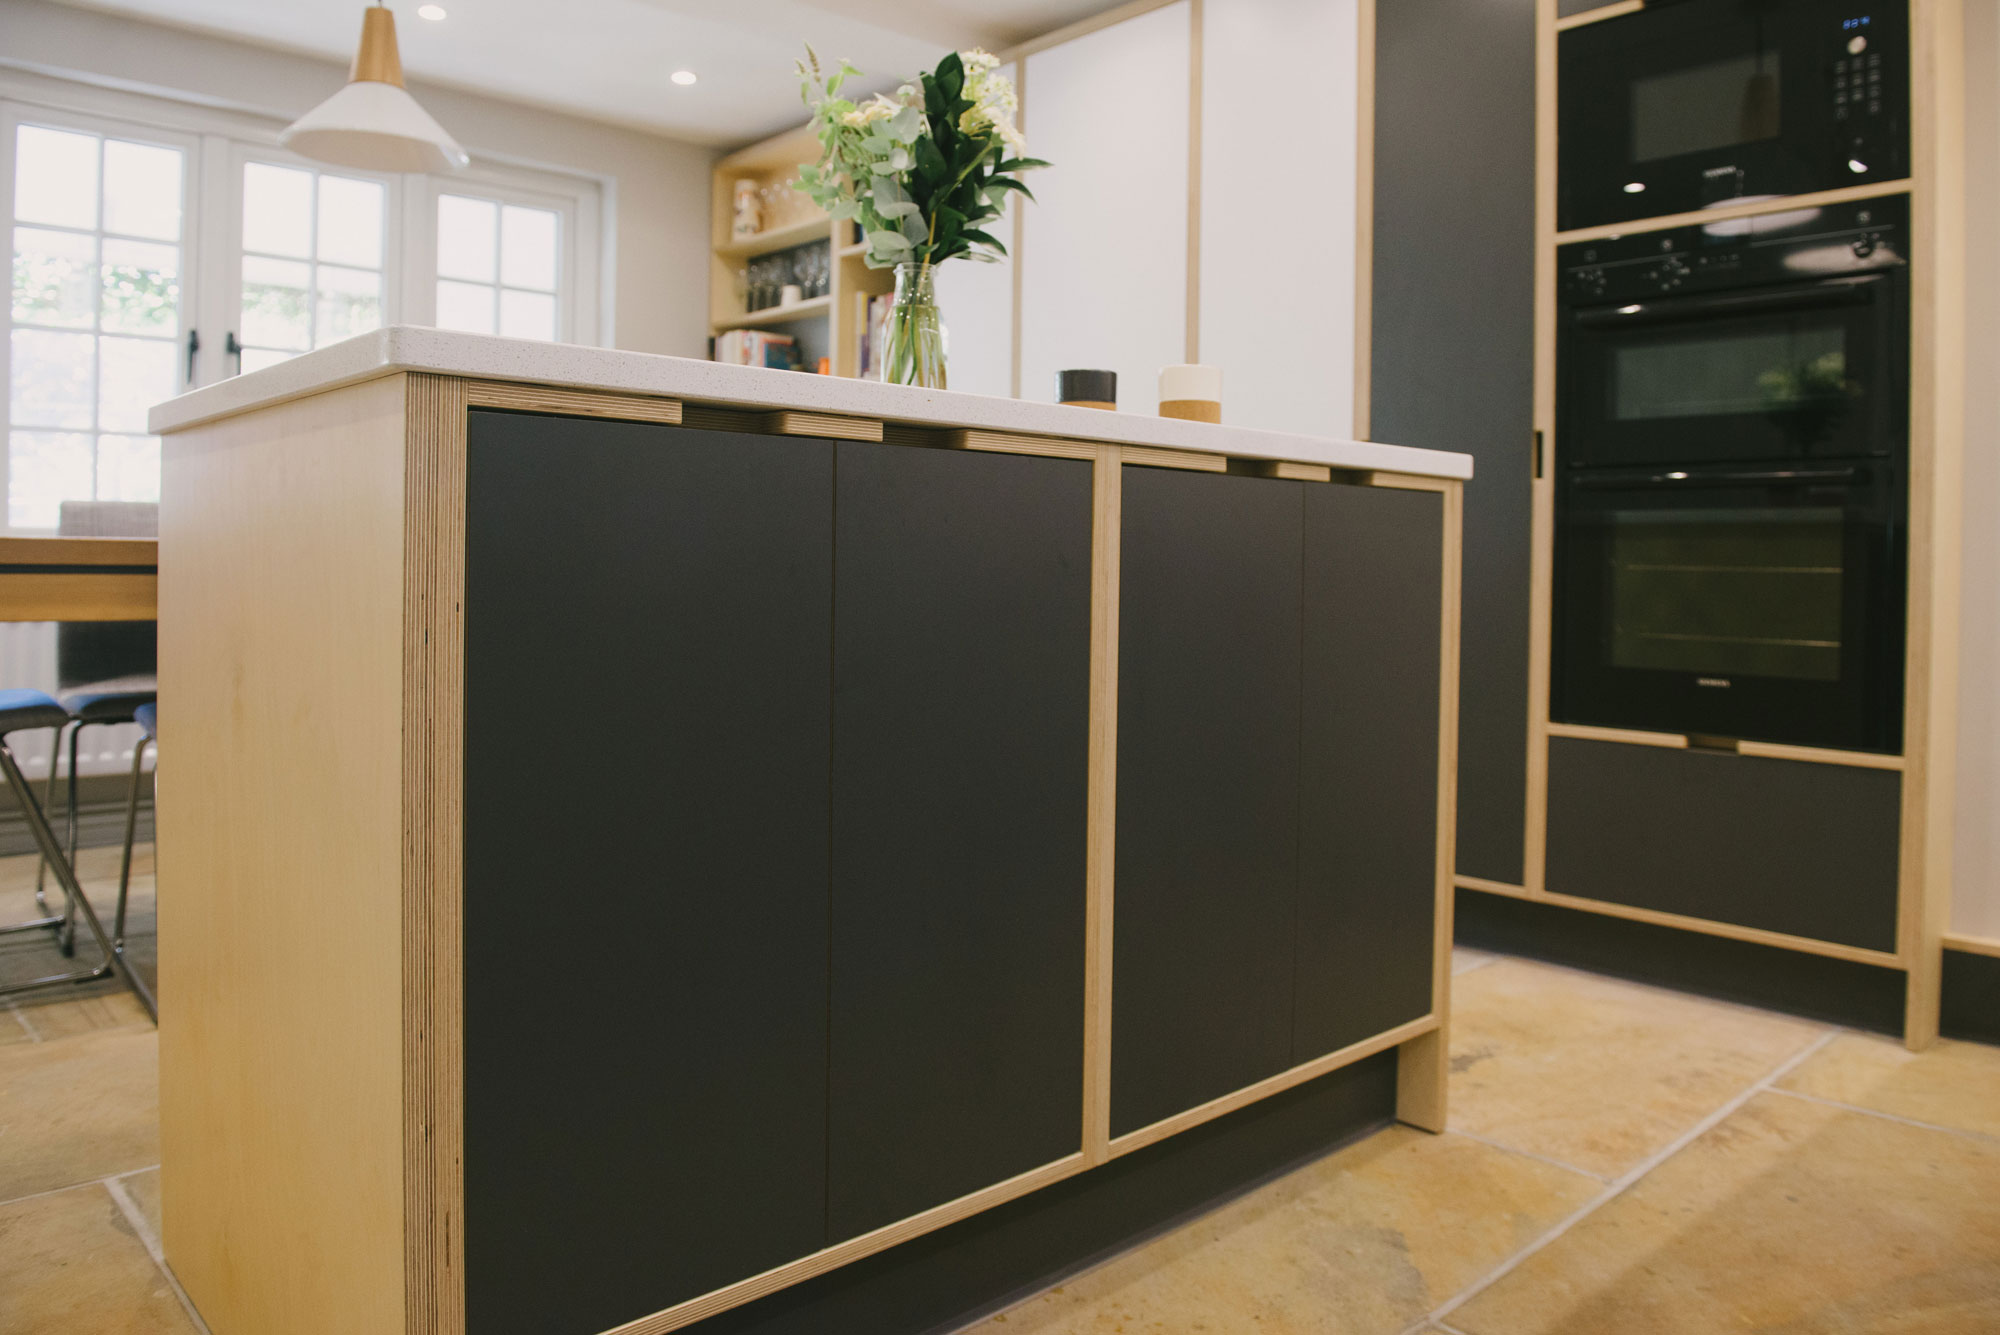 Corian surfaced plywood kitchen island unit